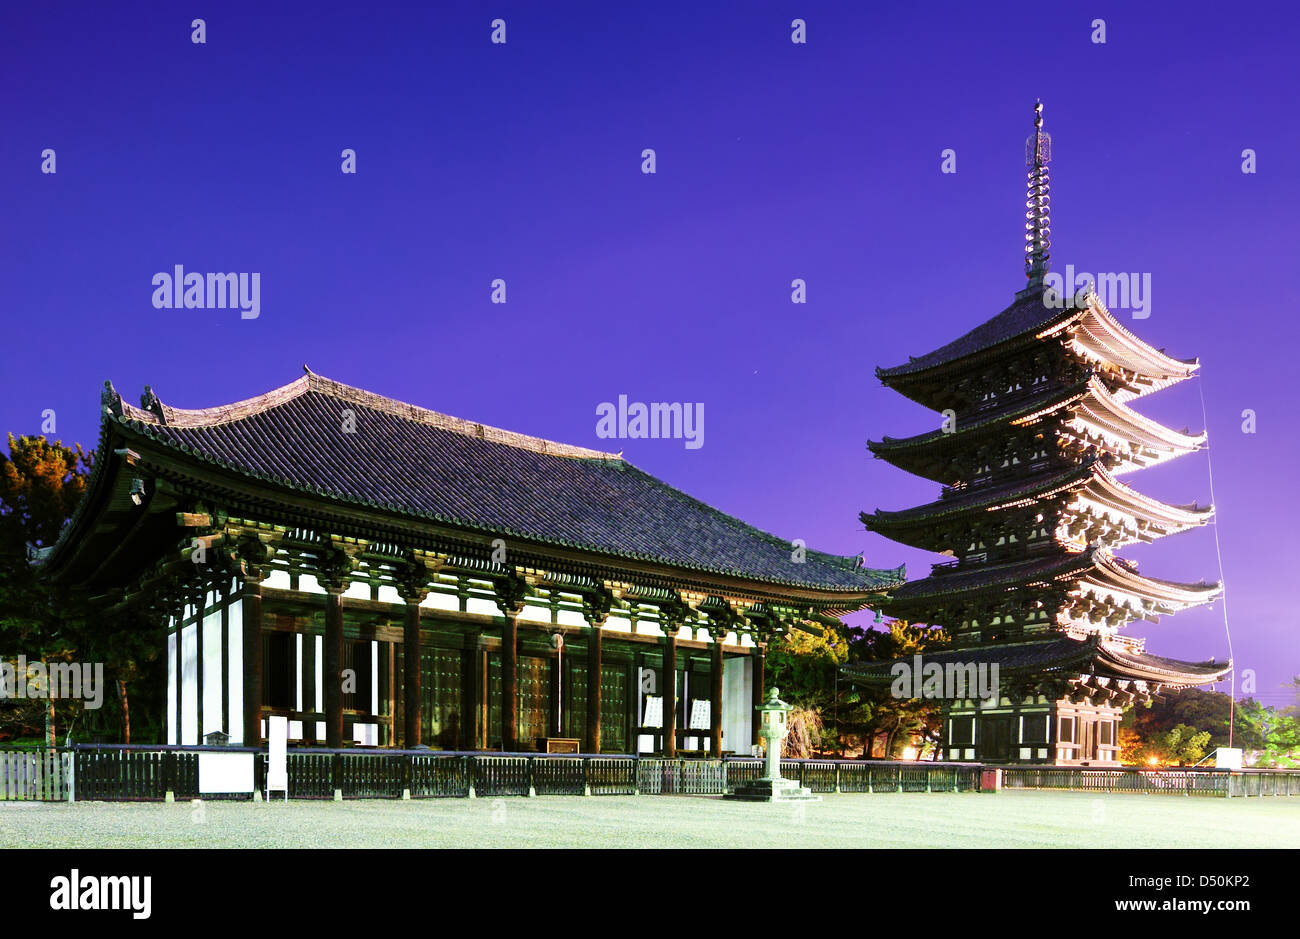 Hall and pagoda of Kofuku-ji Temple, a famed temple of Nara, Japan dating from 669. - Stock Image